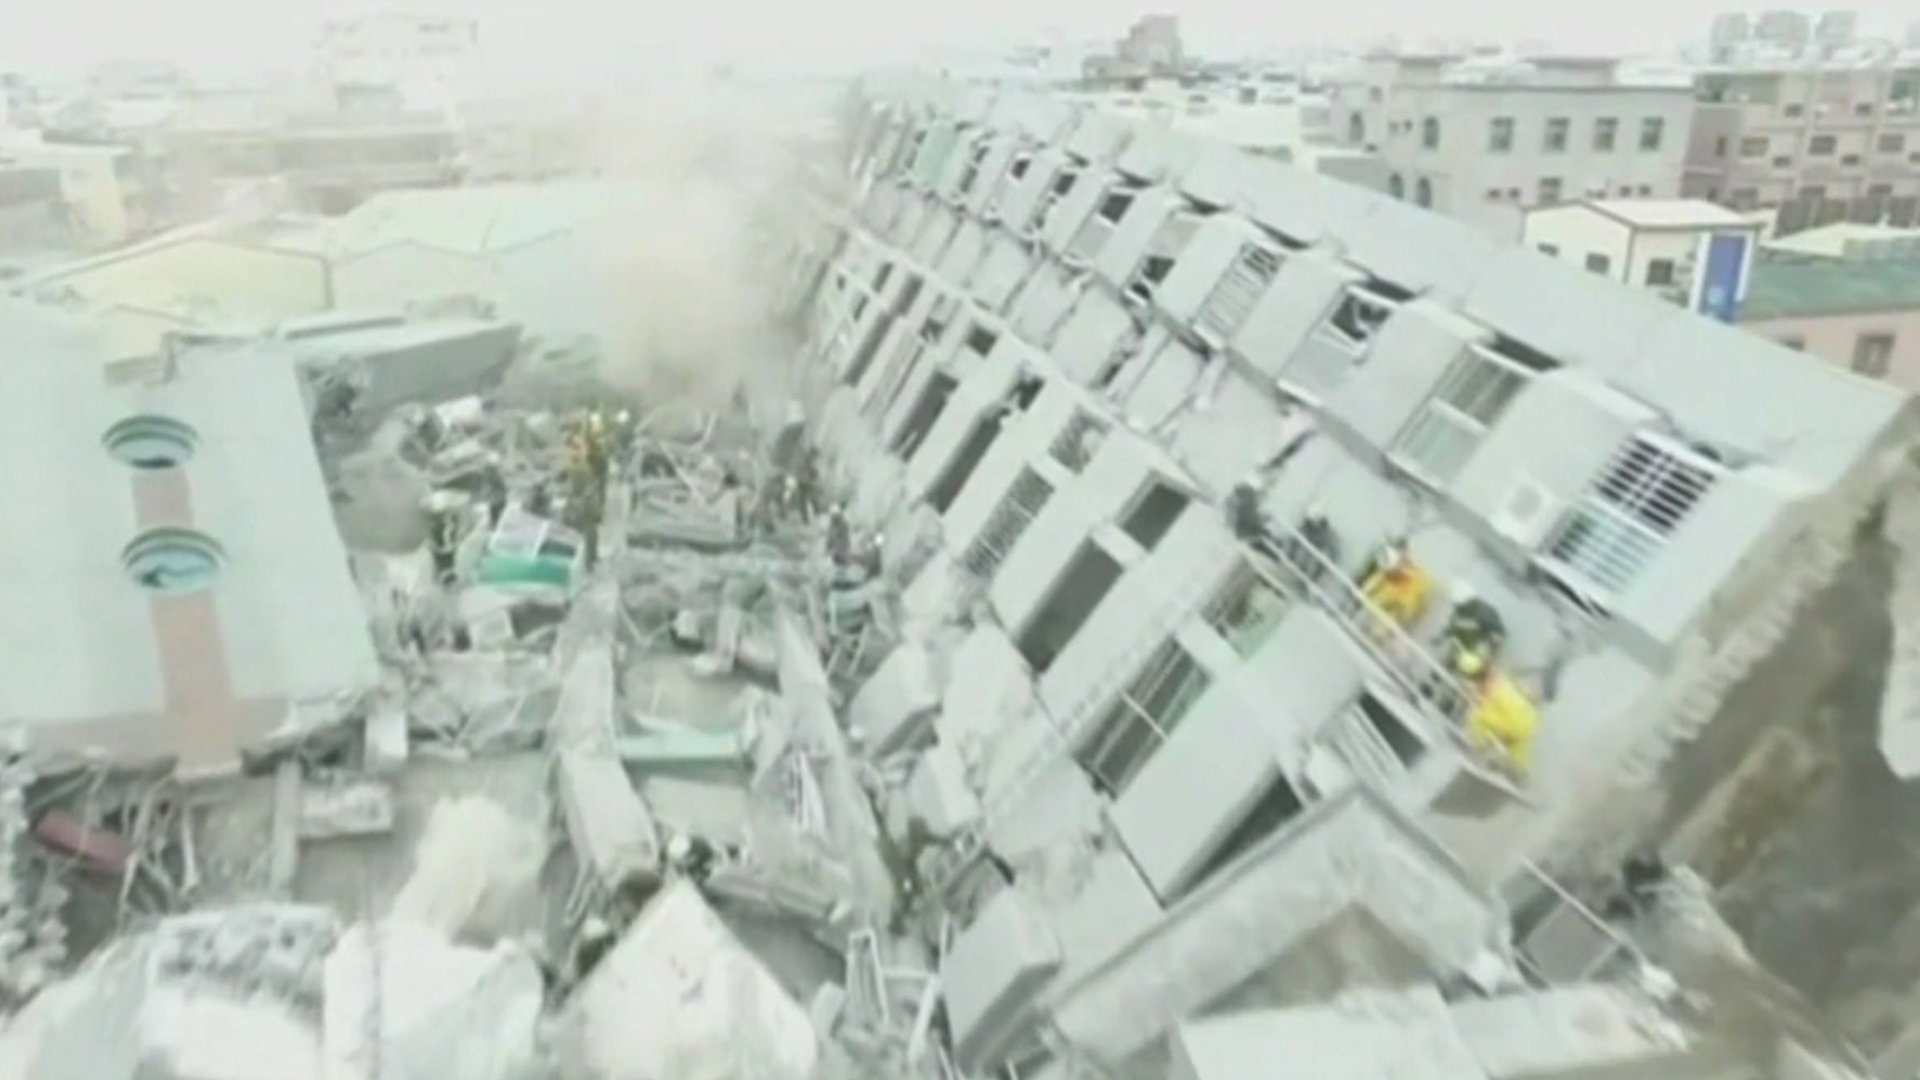 Building complex lying on its side from magnitude 6.4 earthquake that struck Tainan City in February 2016